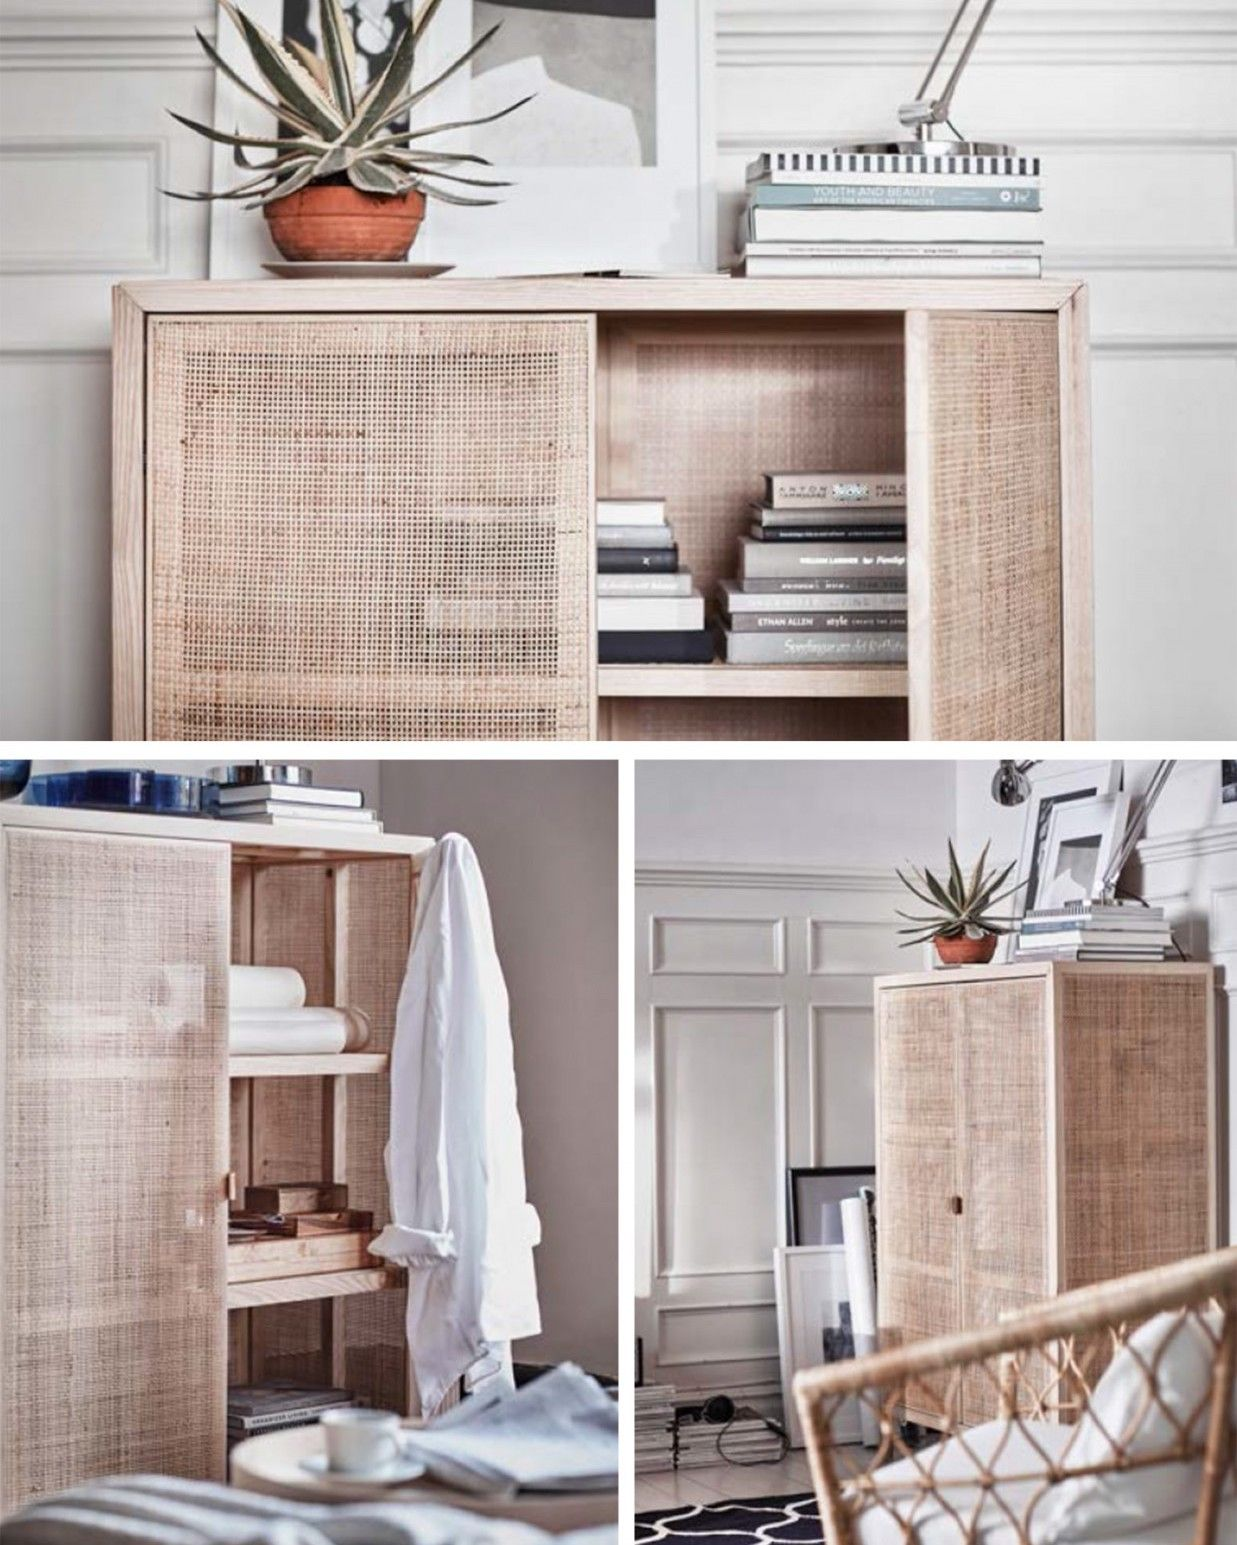 ikea stockholm collection 2017 stockholm 2017 cabinet 275 wohnung pinterest. Black Bedroom Furniture Sets. Home Design Ideas